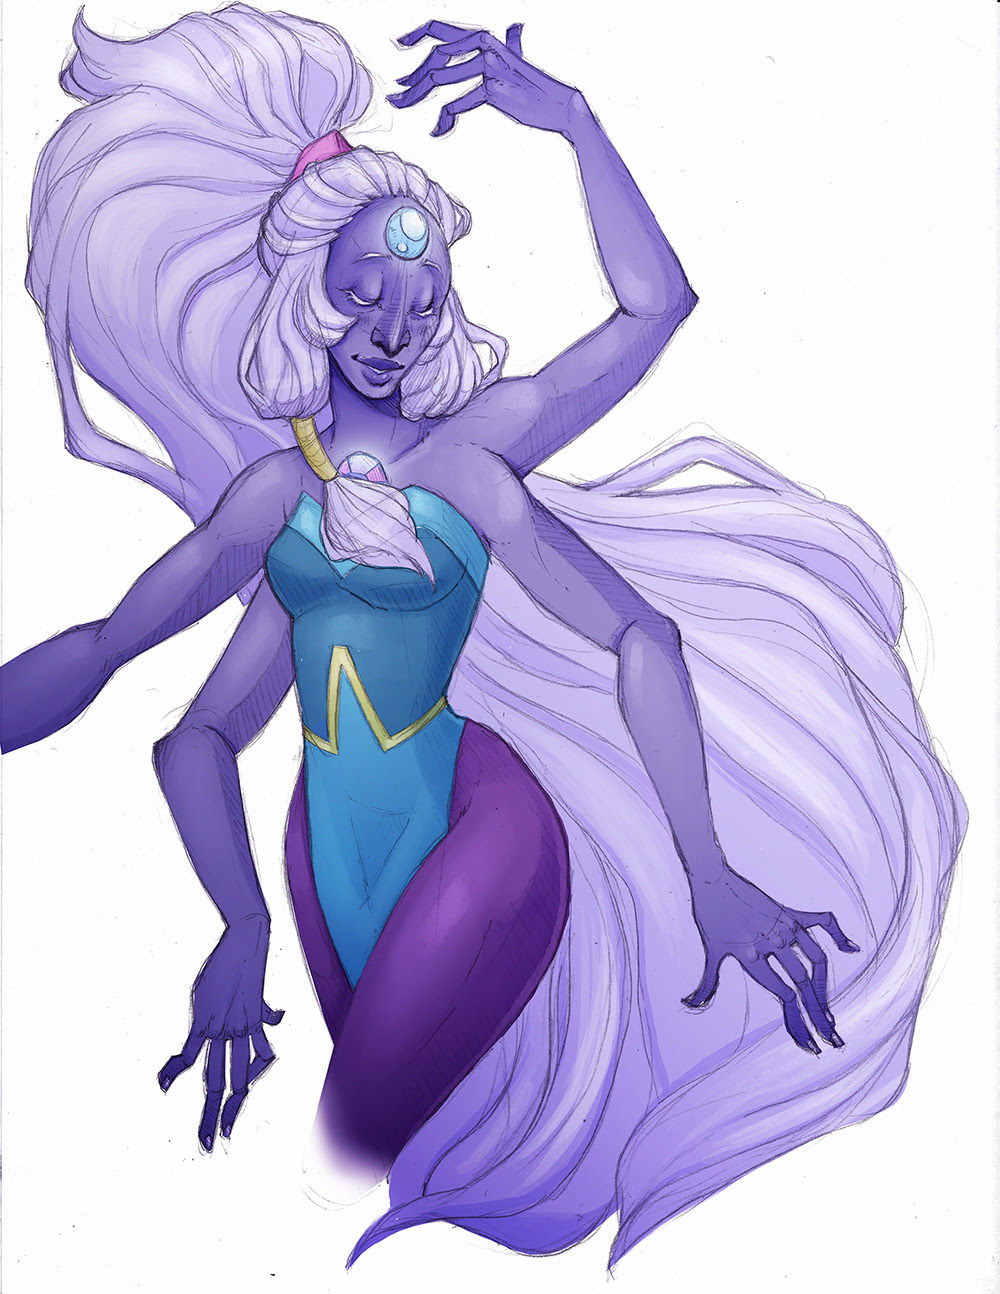 Been a while since I've uploaded anything, I've been really busy with a super exciting project I can't talk about yet, but will share as soon as I can! Anyway, here's a quick Opal doodle because...